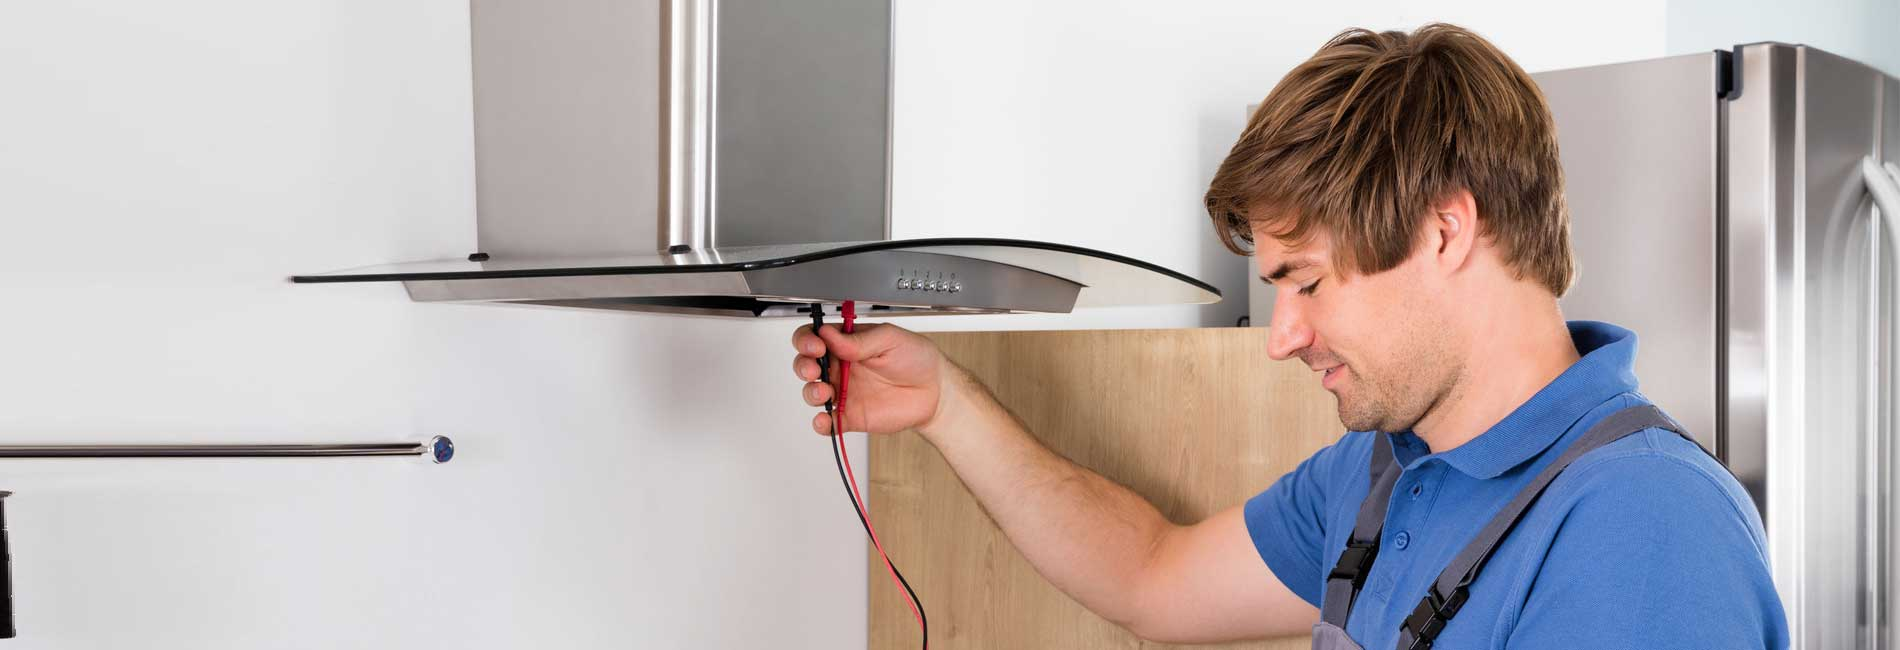 Hindware Chimney Repair in kandanchavadi